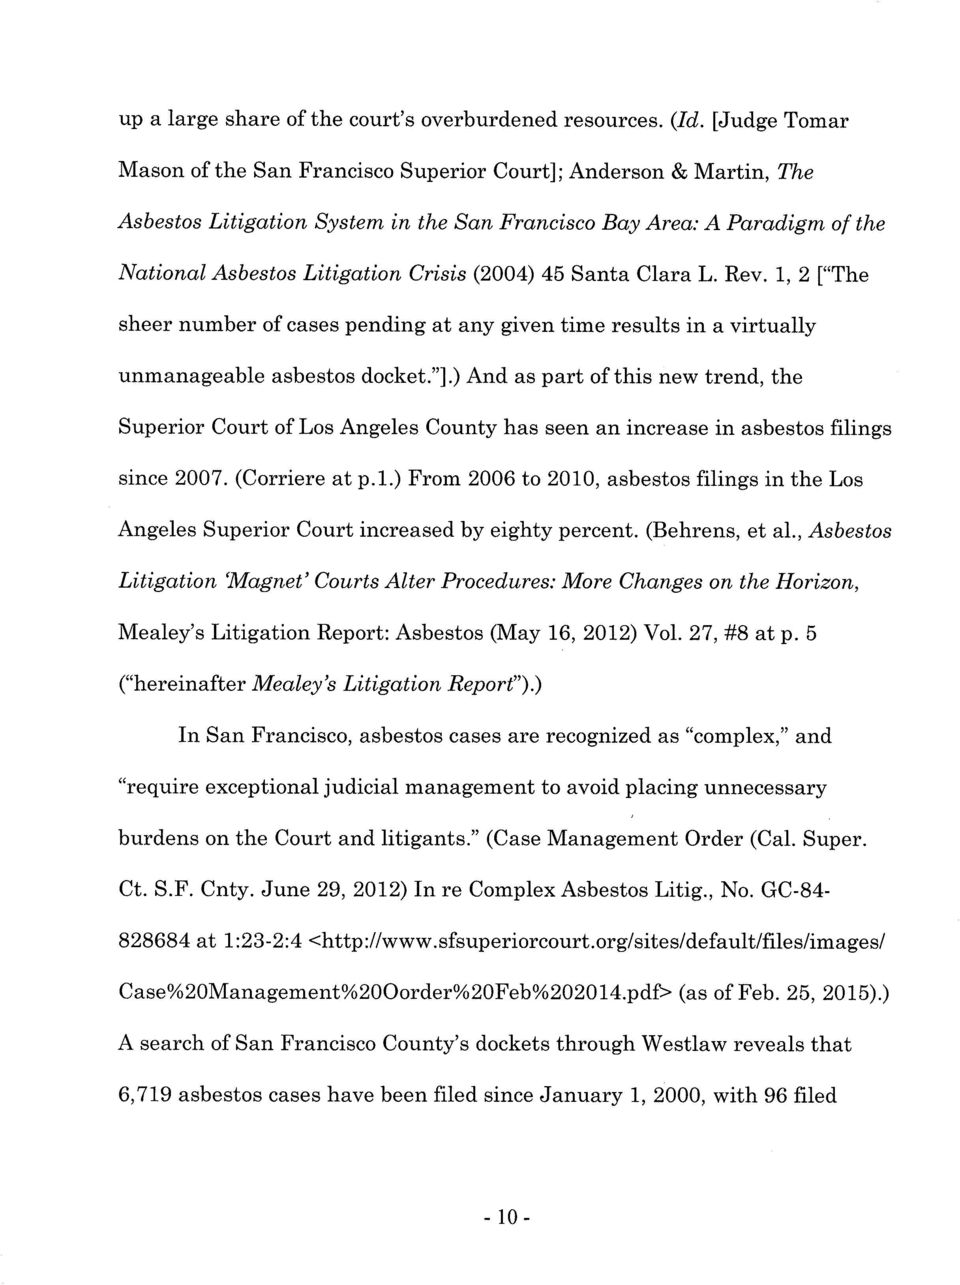 "(2004) 45 Santa Clara L. Rev. I, 2l""The sheer number of cases pending at any given time results in a virtually unmanageable asbestos docket.""]."